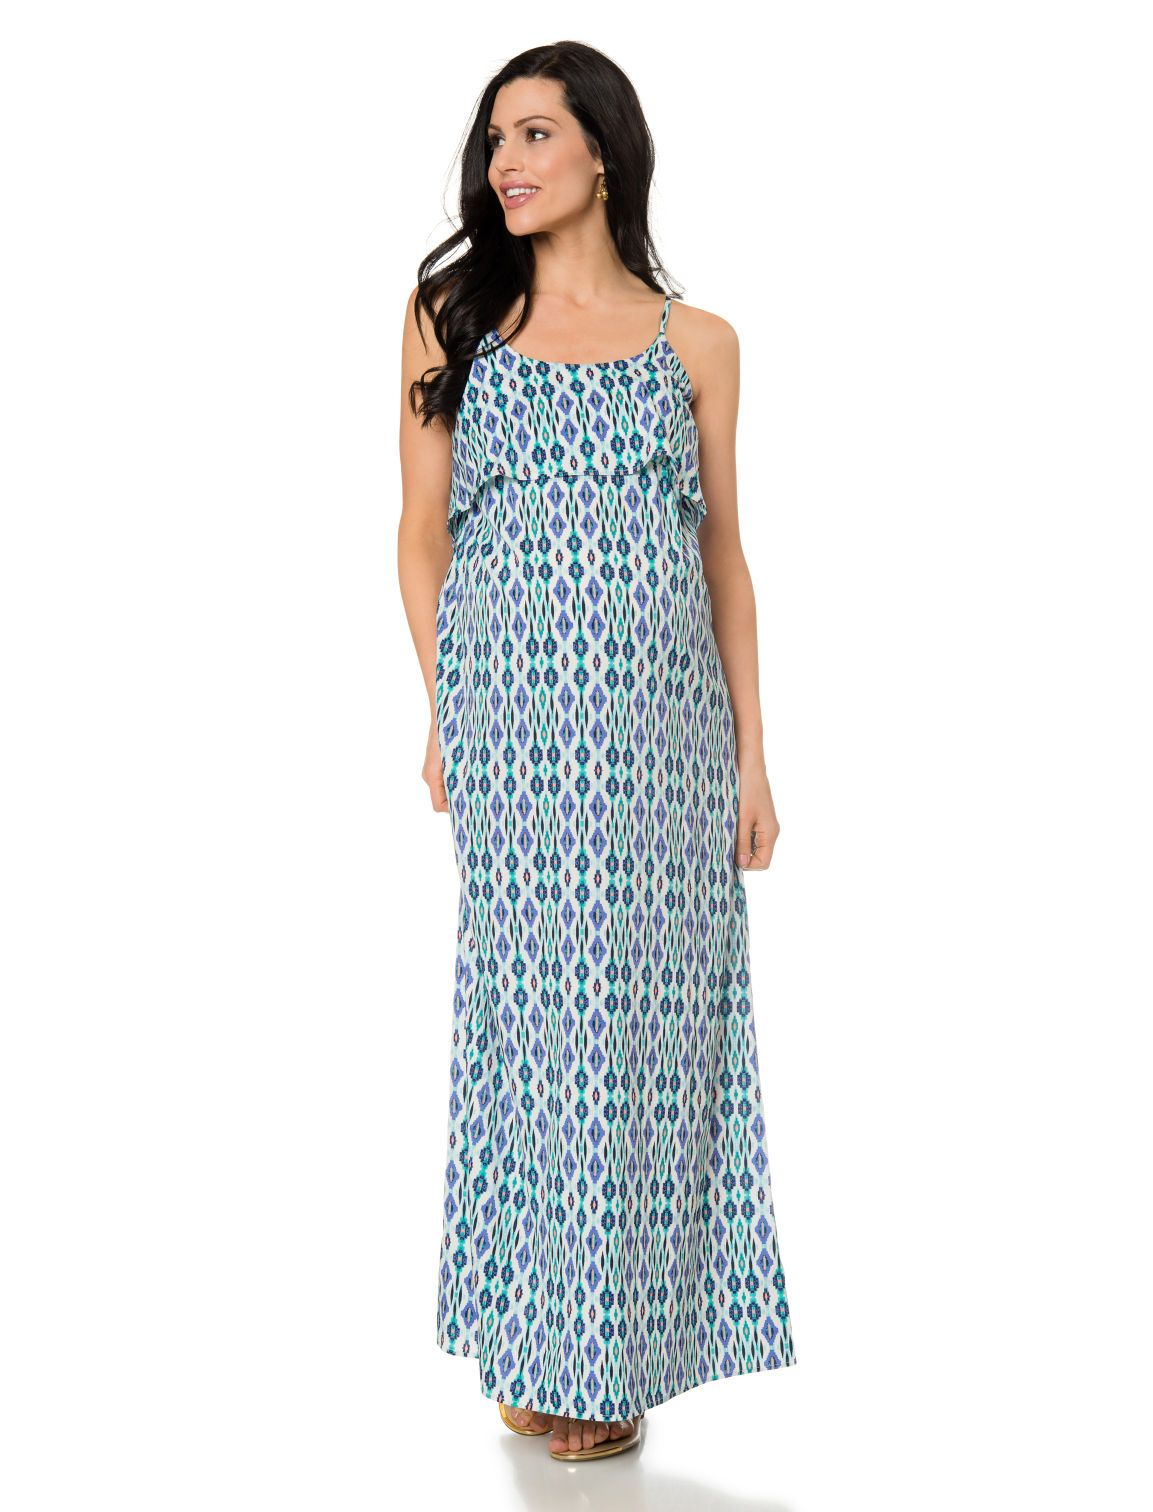 82f49f47b123e Sleeveless ruffle front maternity maxi dress available at Destination  Maternity | Babymoon Packing Essentials